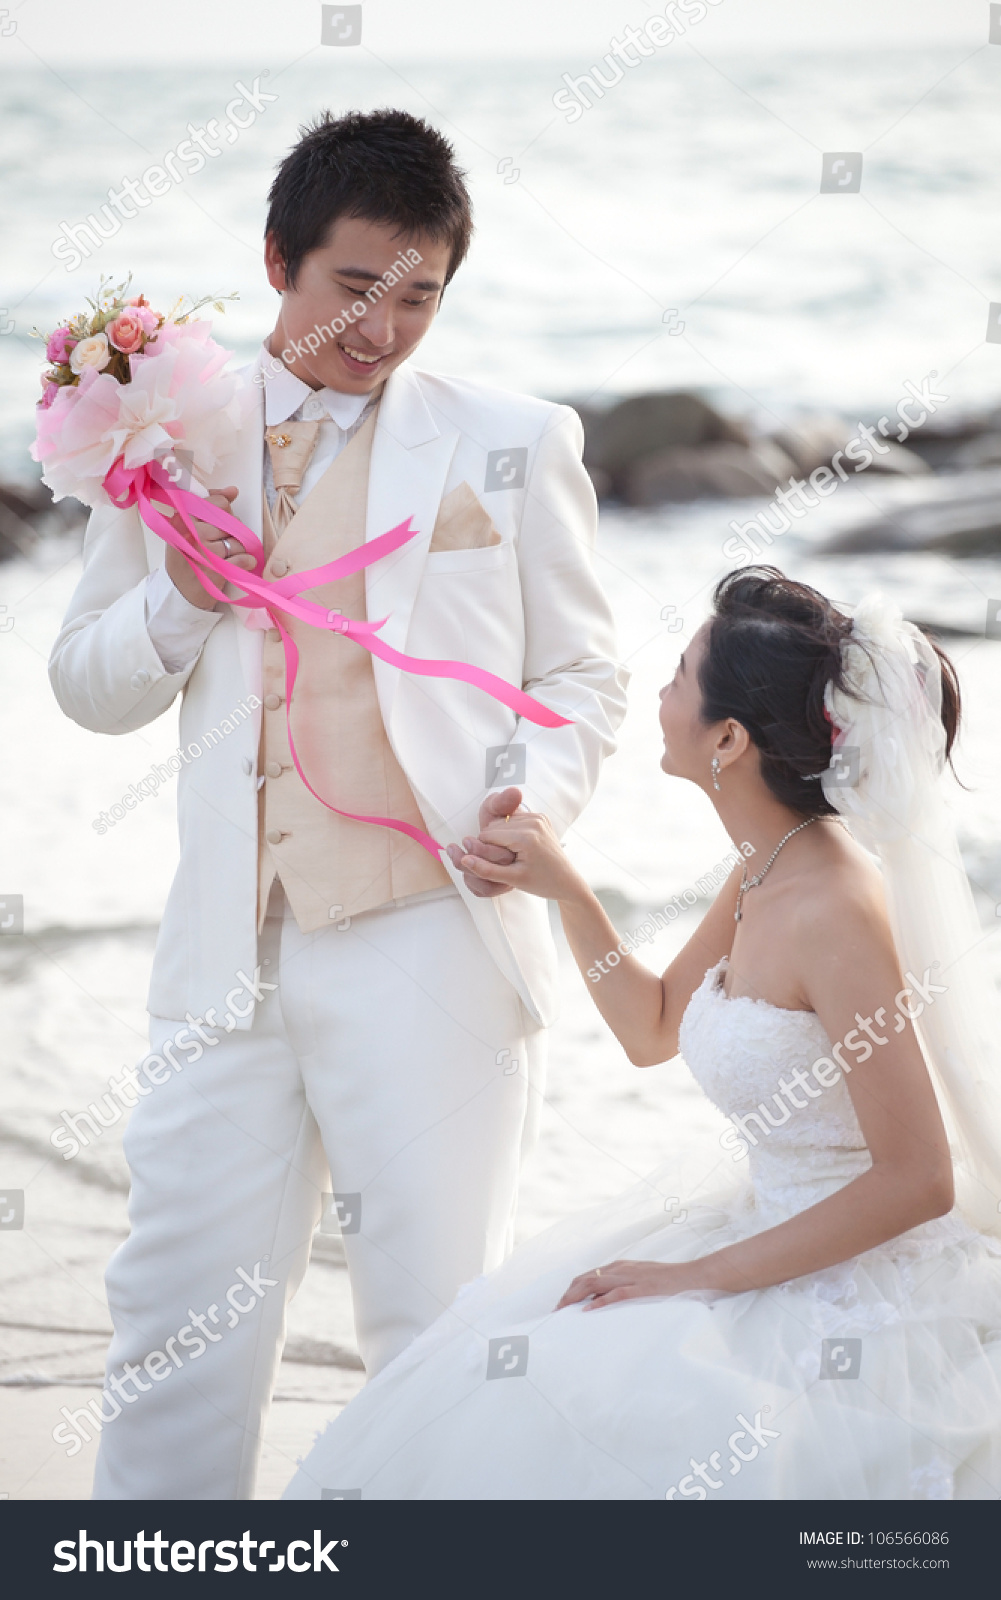 Face Of Asian Groom And Bride With White Wedding Suit Standing On Sea Beach